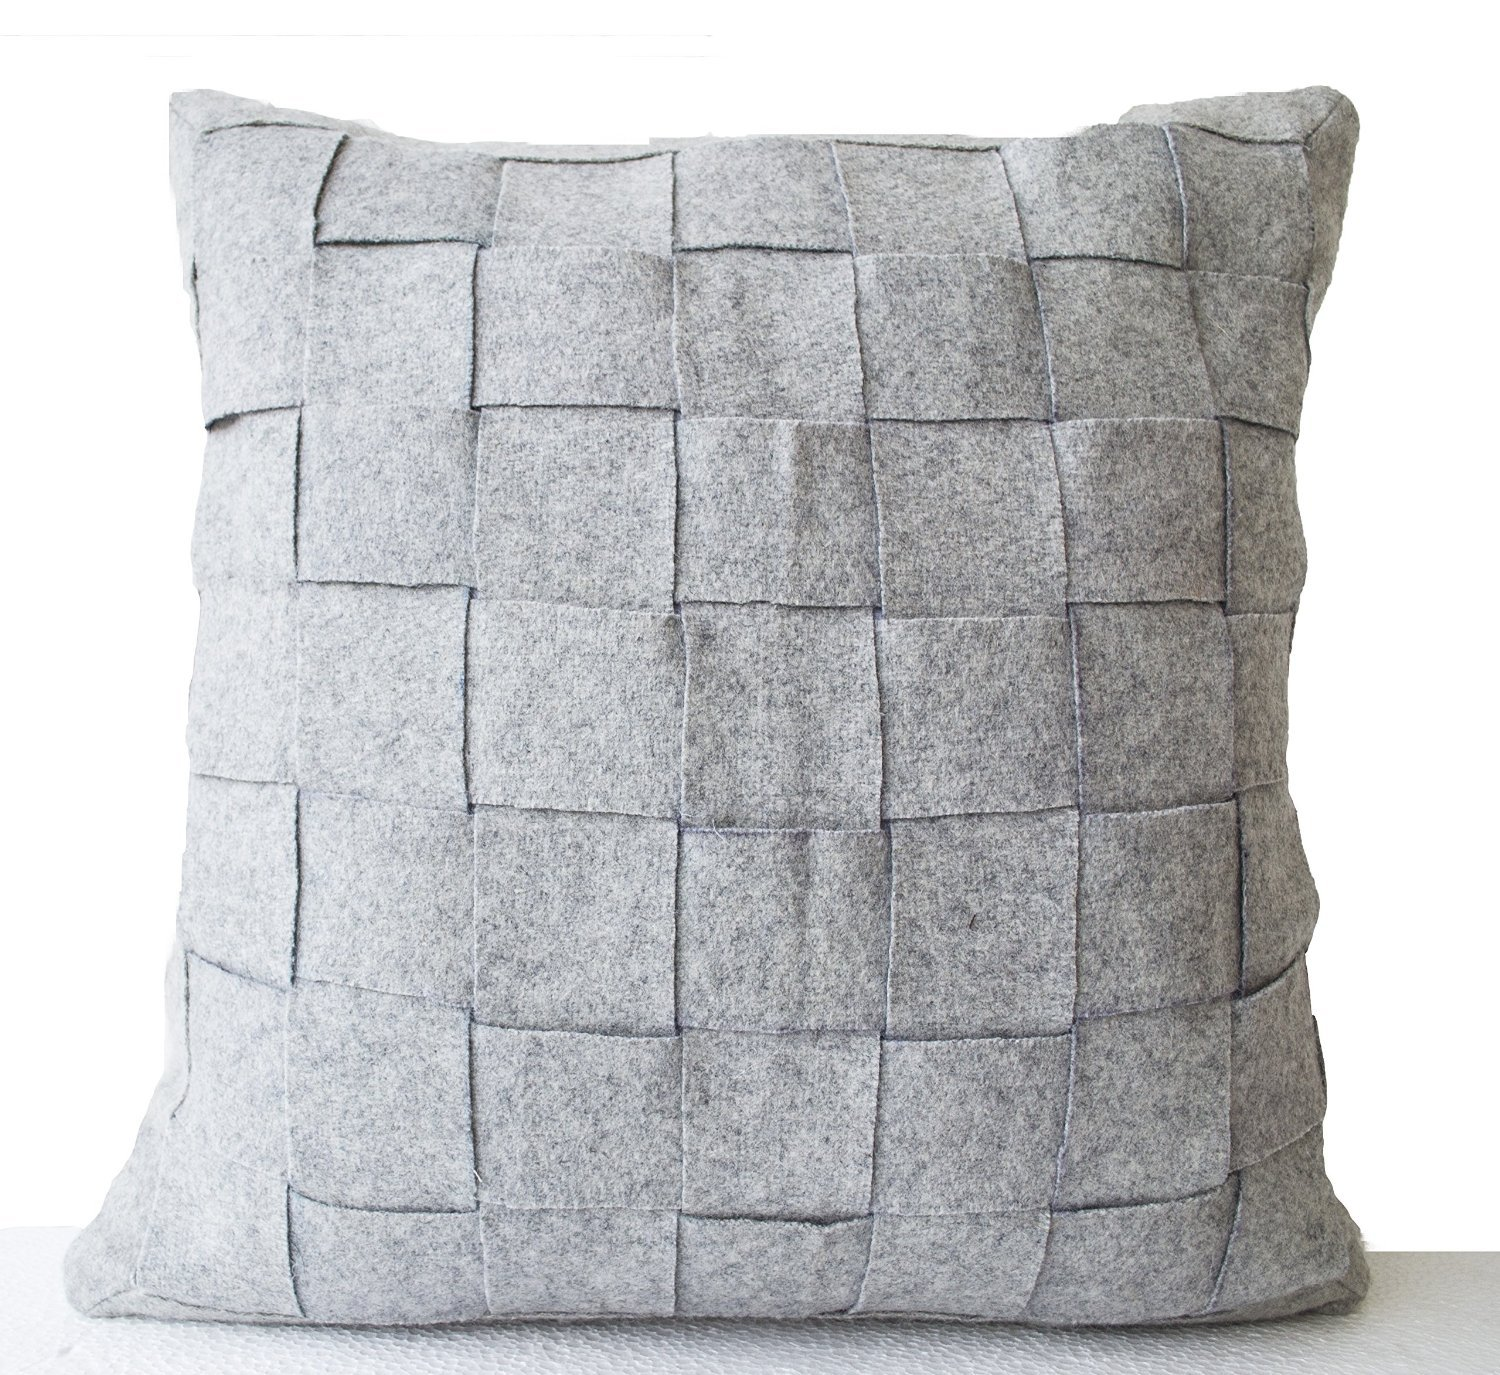 Amazon.com: Amore Beaute Customizable Grey Felt Pillow Cover ...